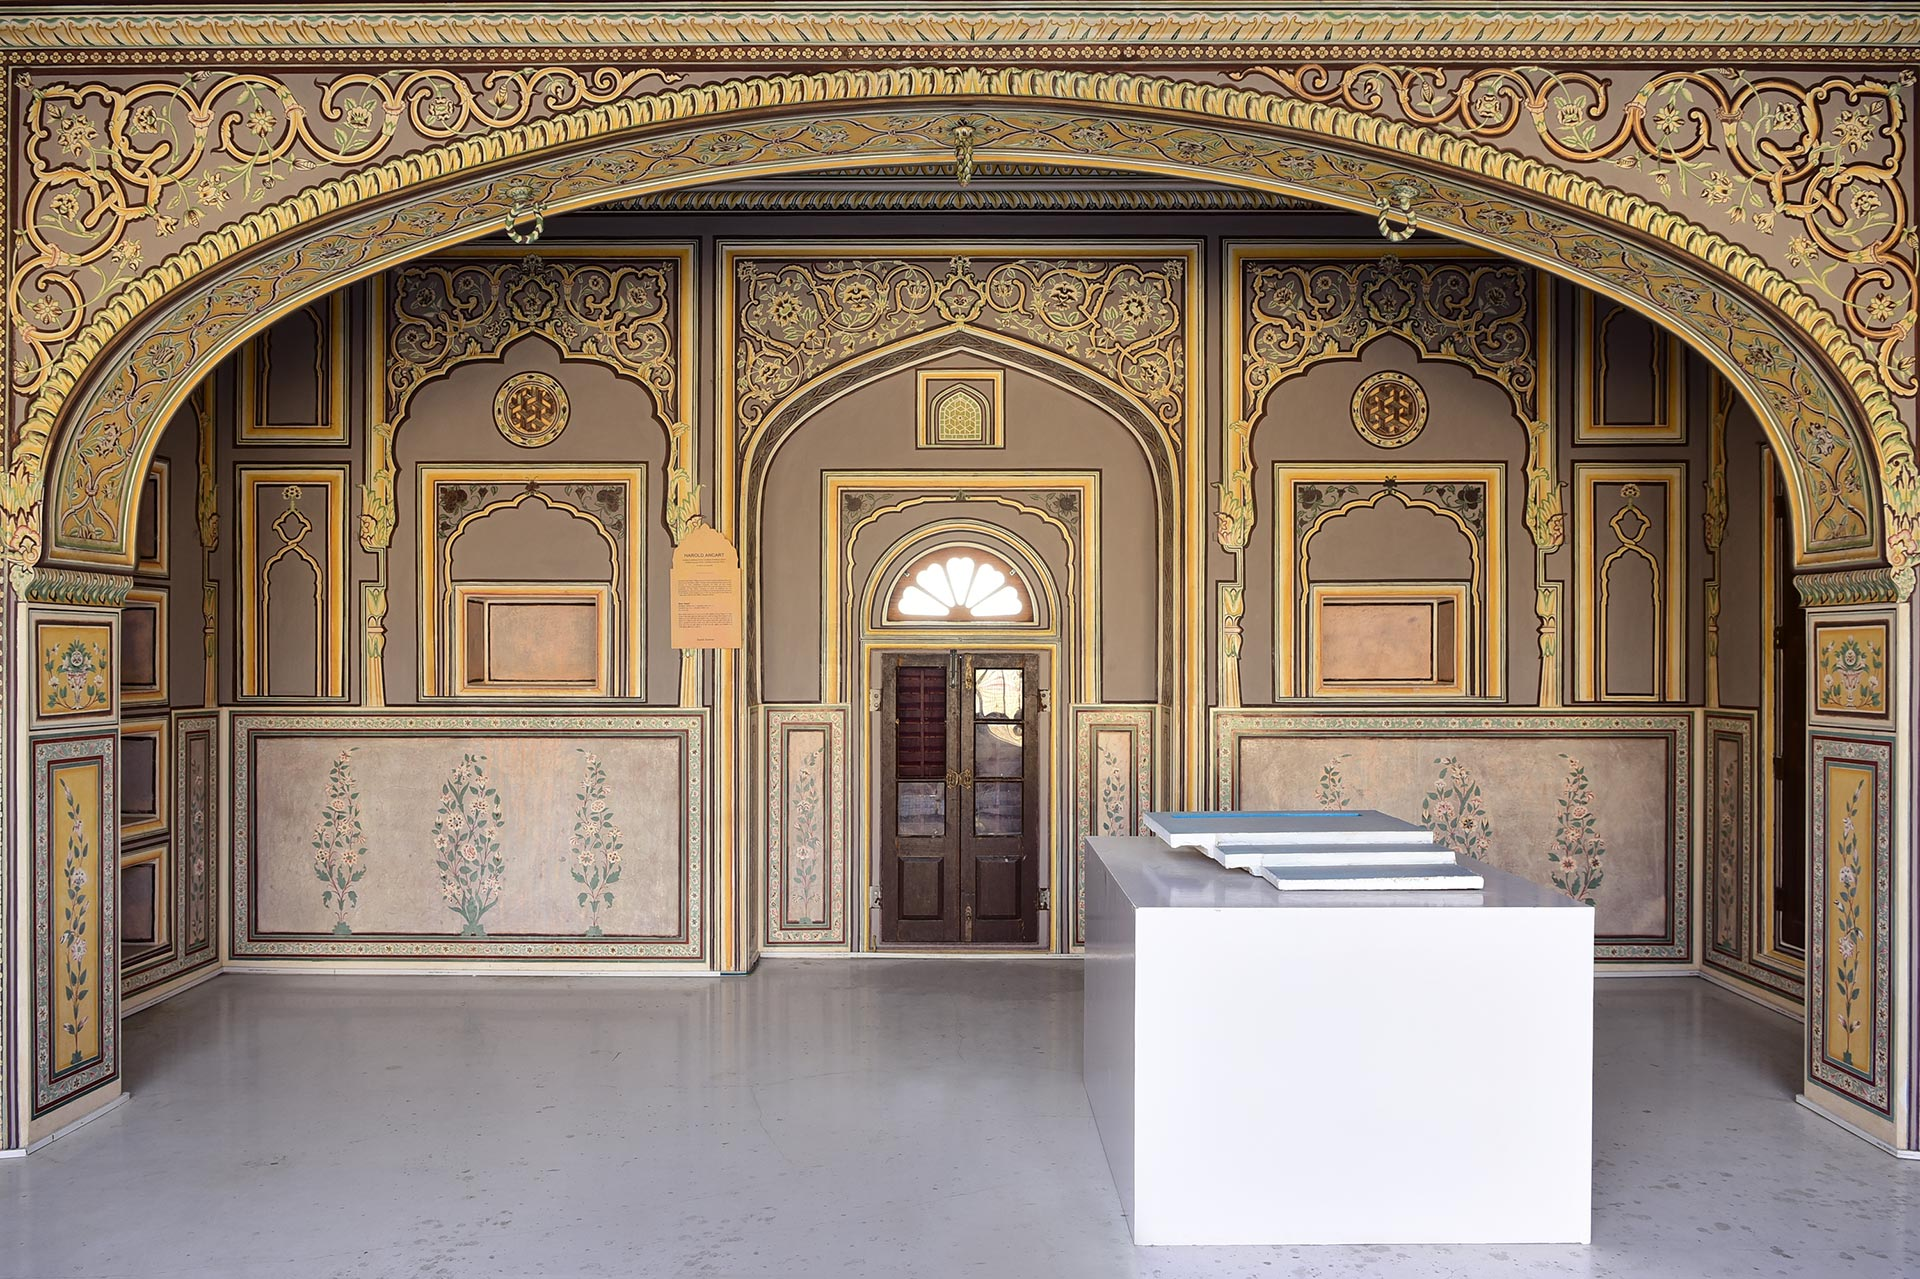 Installation view of the 2019 exhibition at The Sculpture Park at Madhavendra Palace in Jaipur, India, dated 2019.